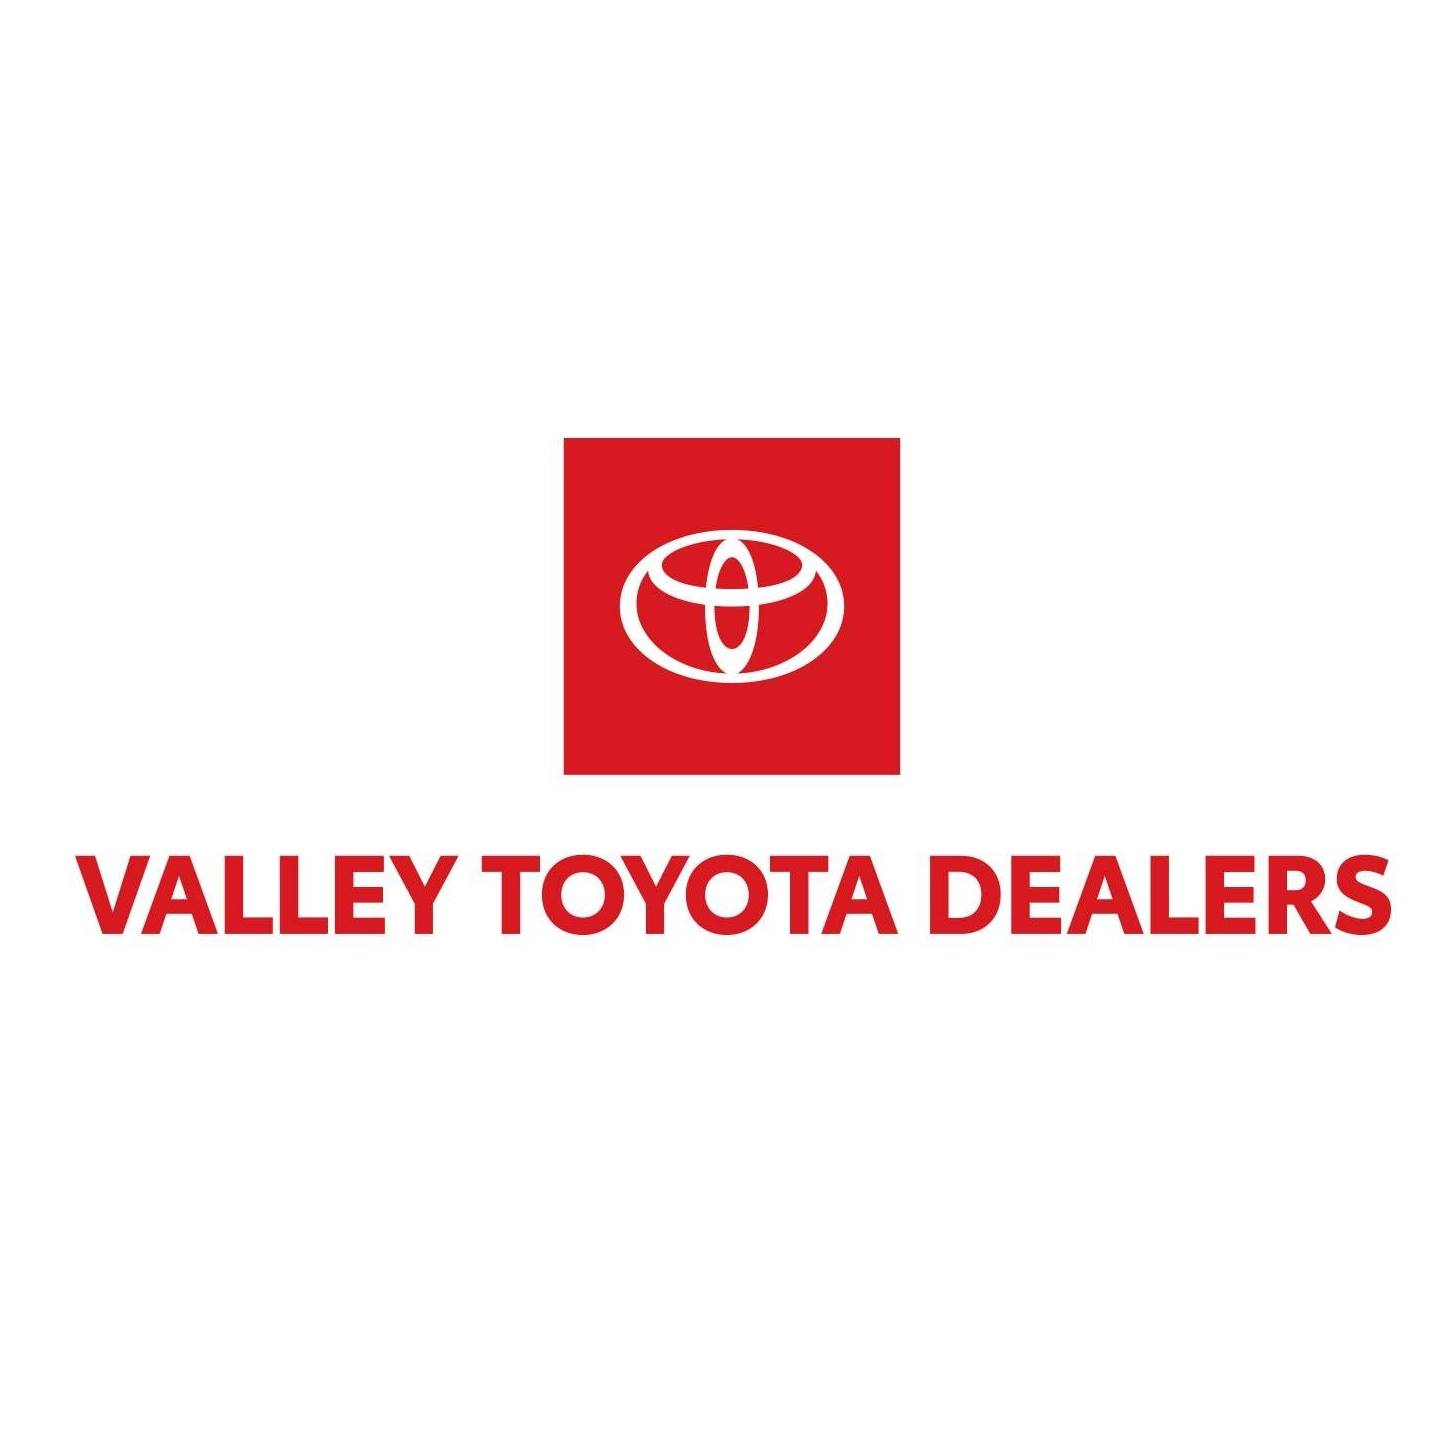 Team Valley Toyota Dealers